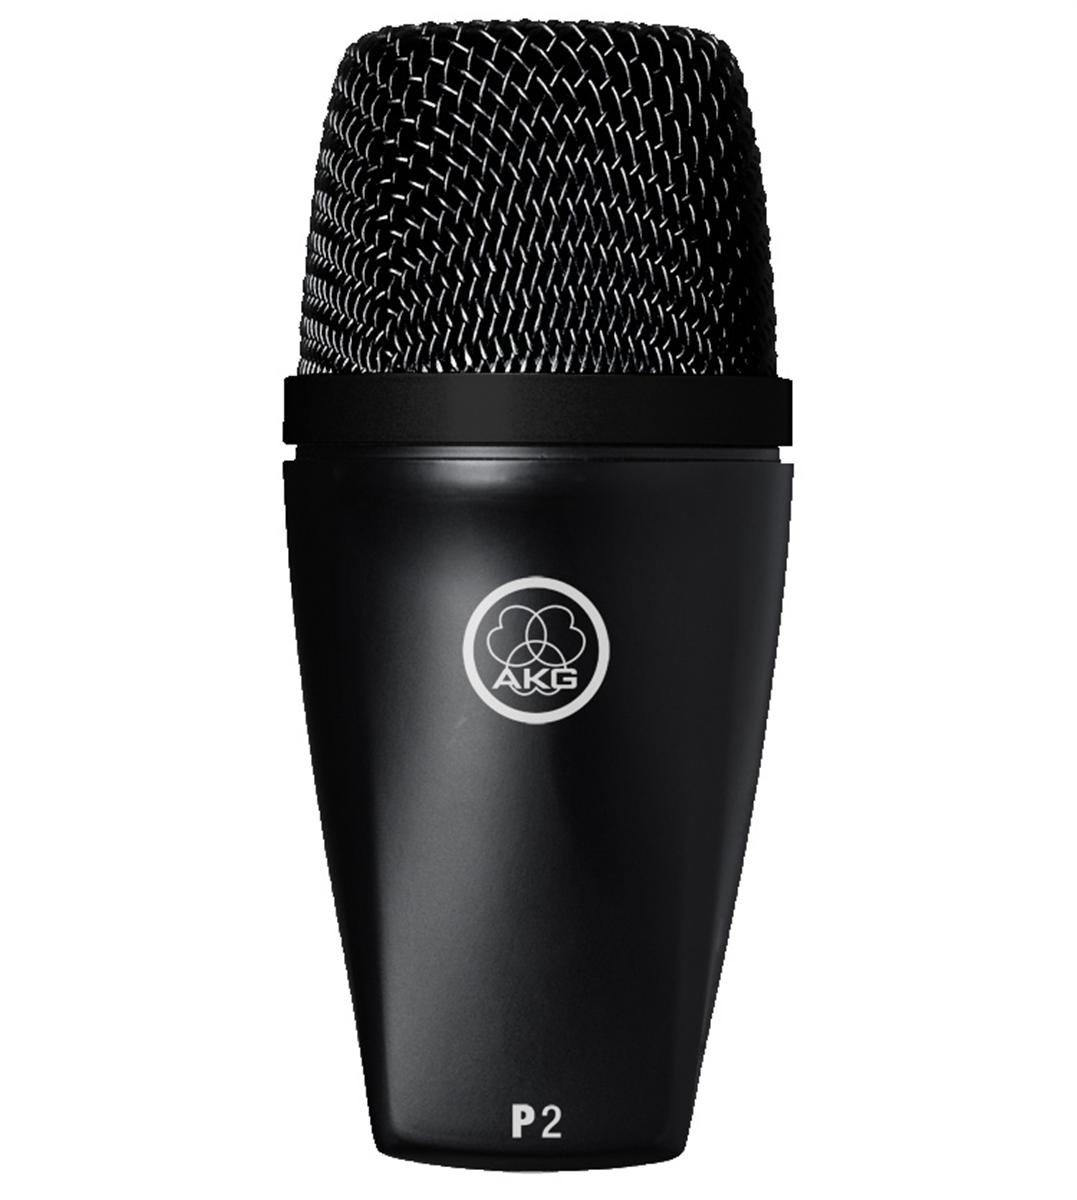 AKG P2 Dynamic Bass Instrument Microphone